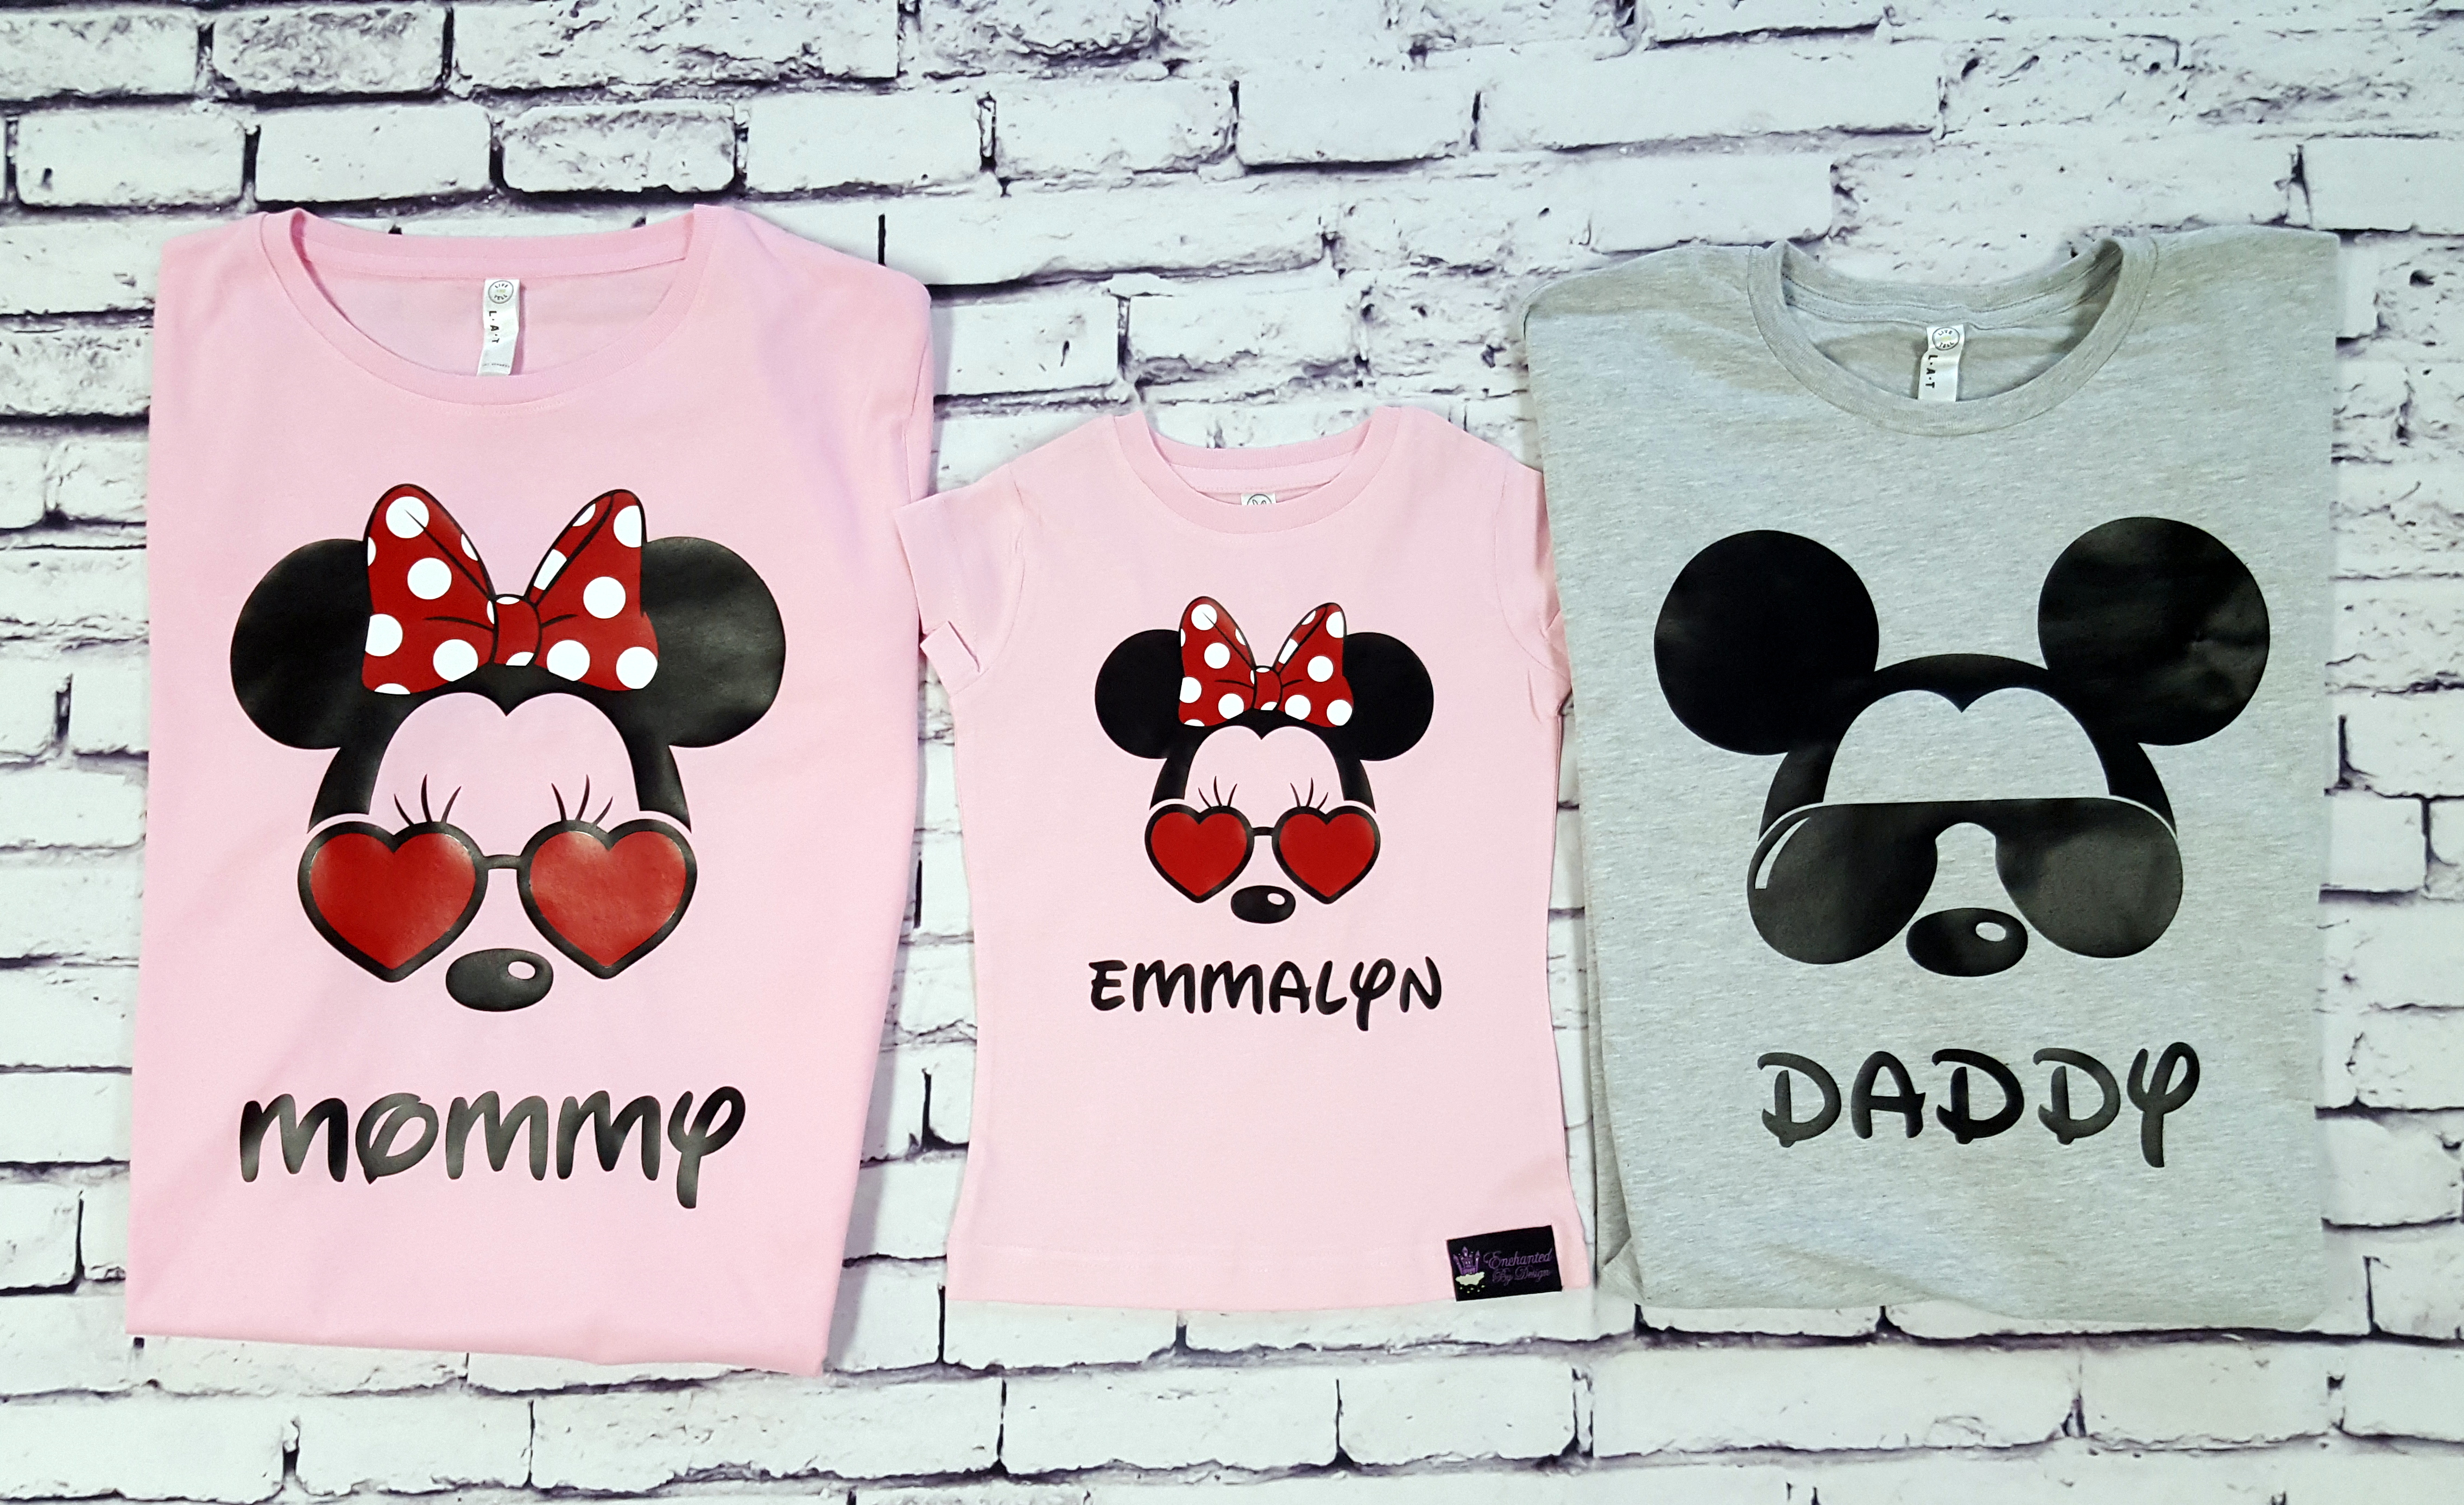 d1b1ef8476 Sunglass Mickey and Minnie Mouse Disney Family Trip Shirts ...